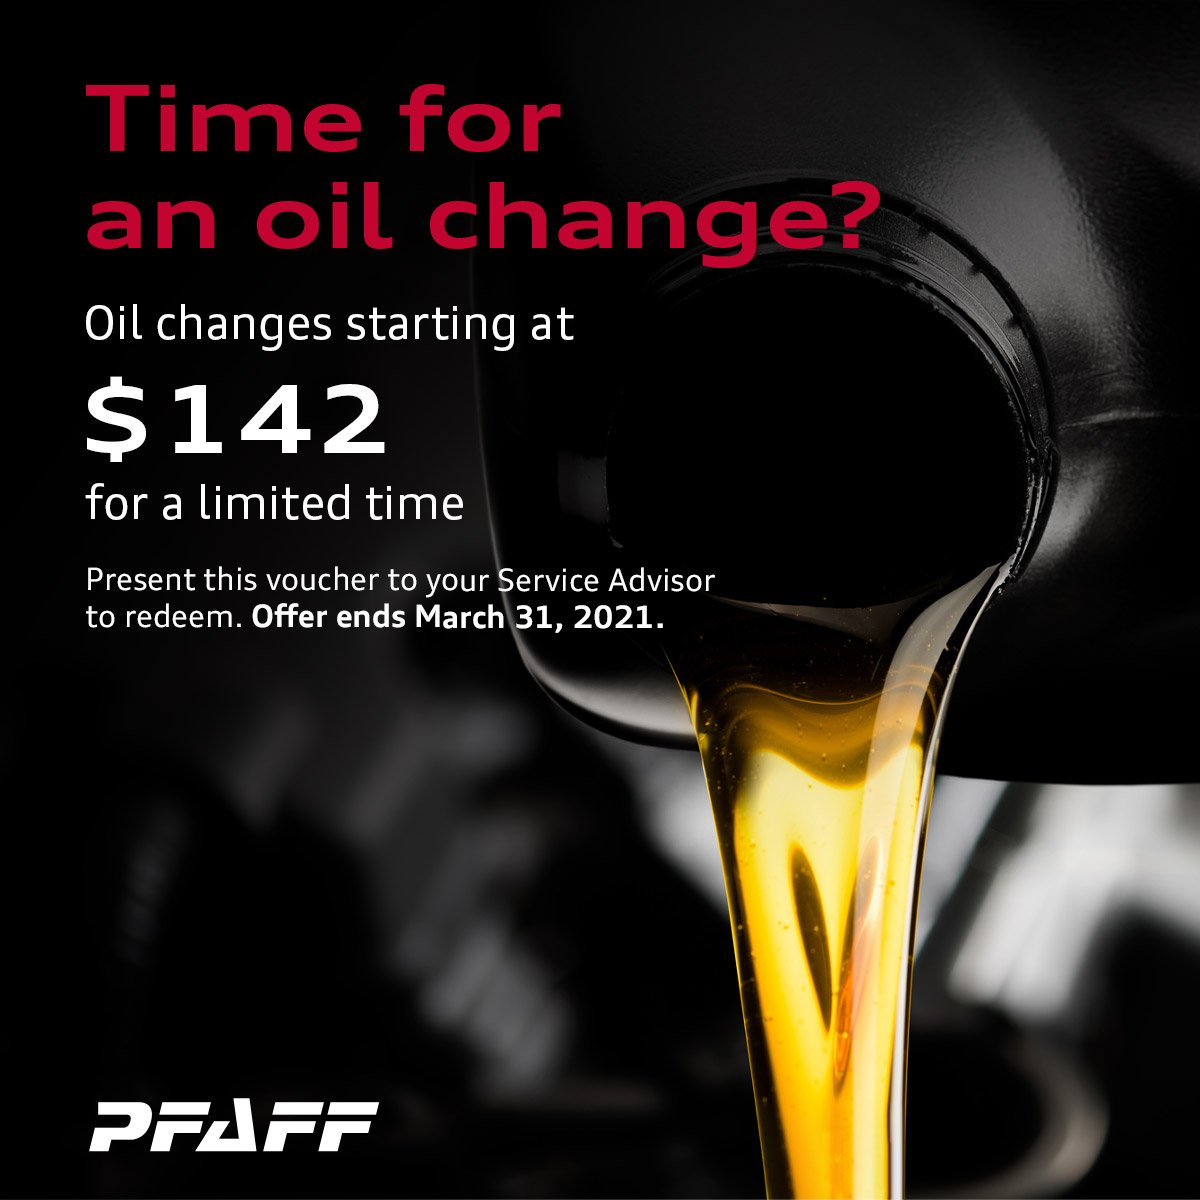 Oil Changes starting at $142 for a limited time